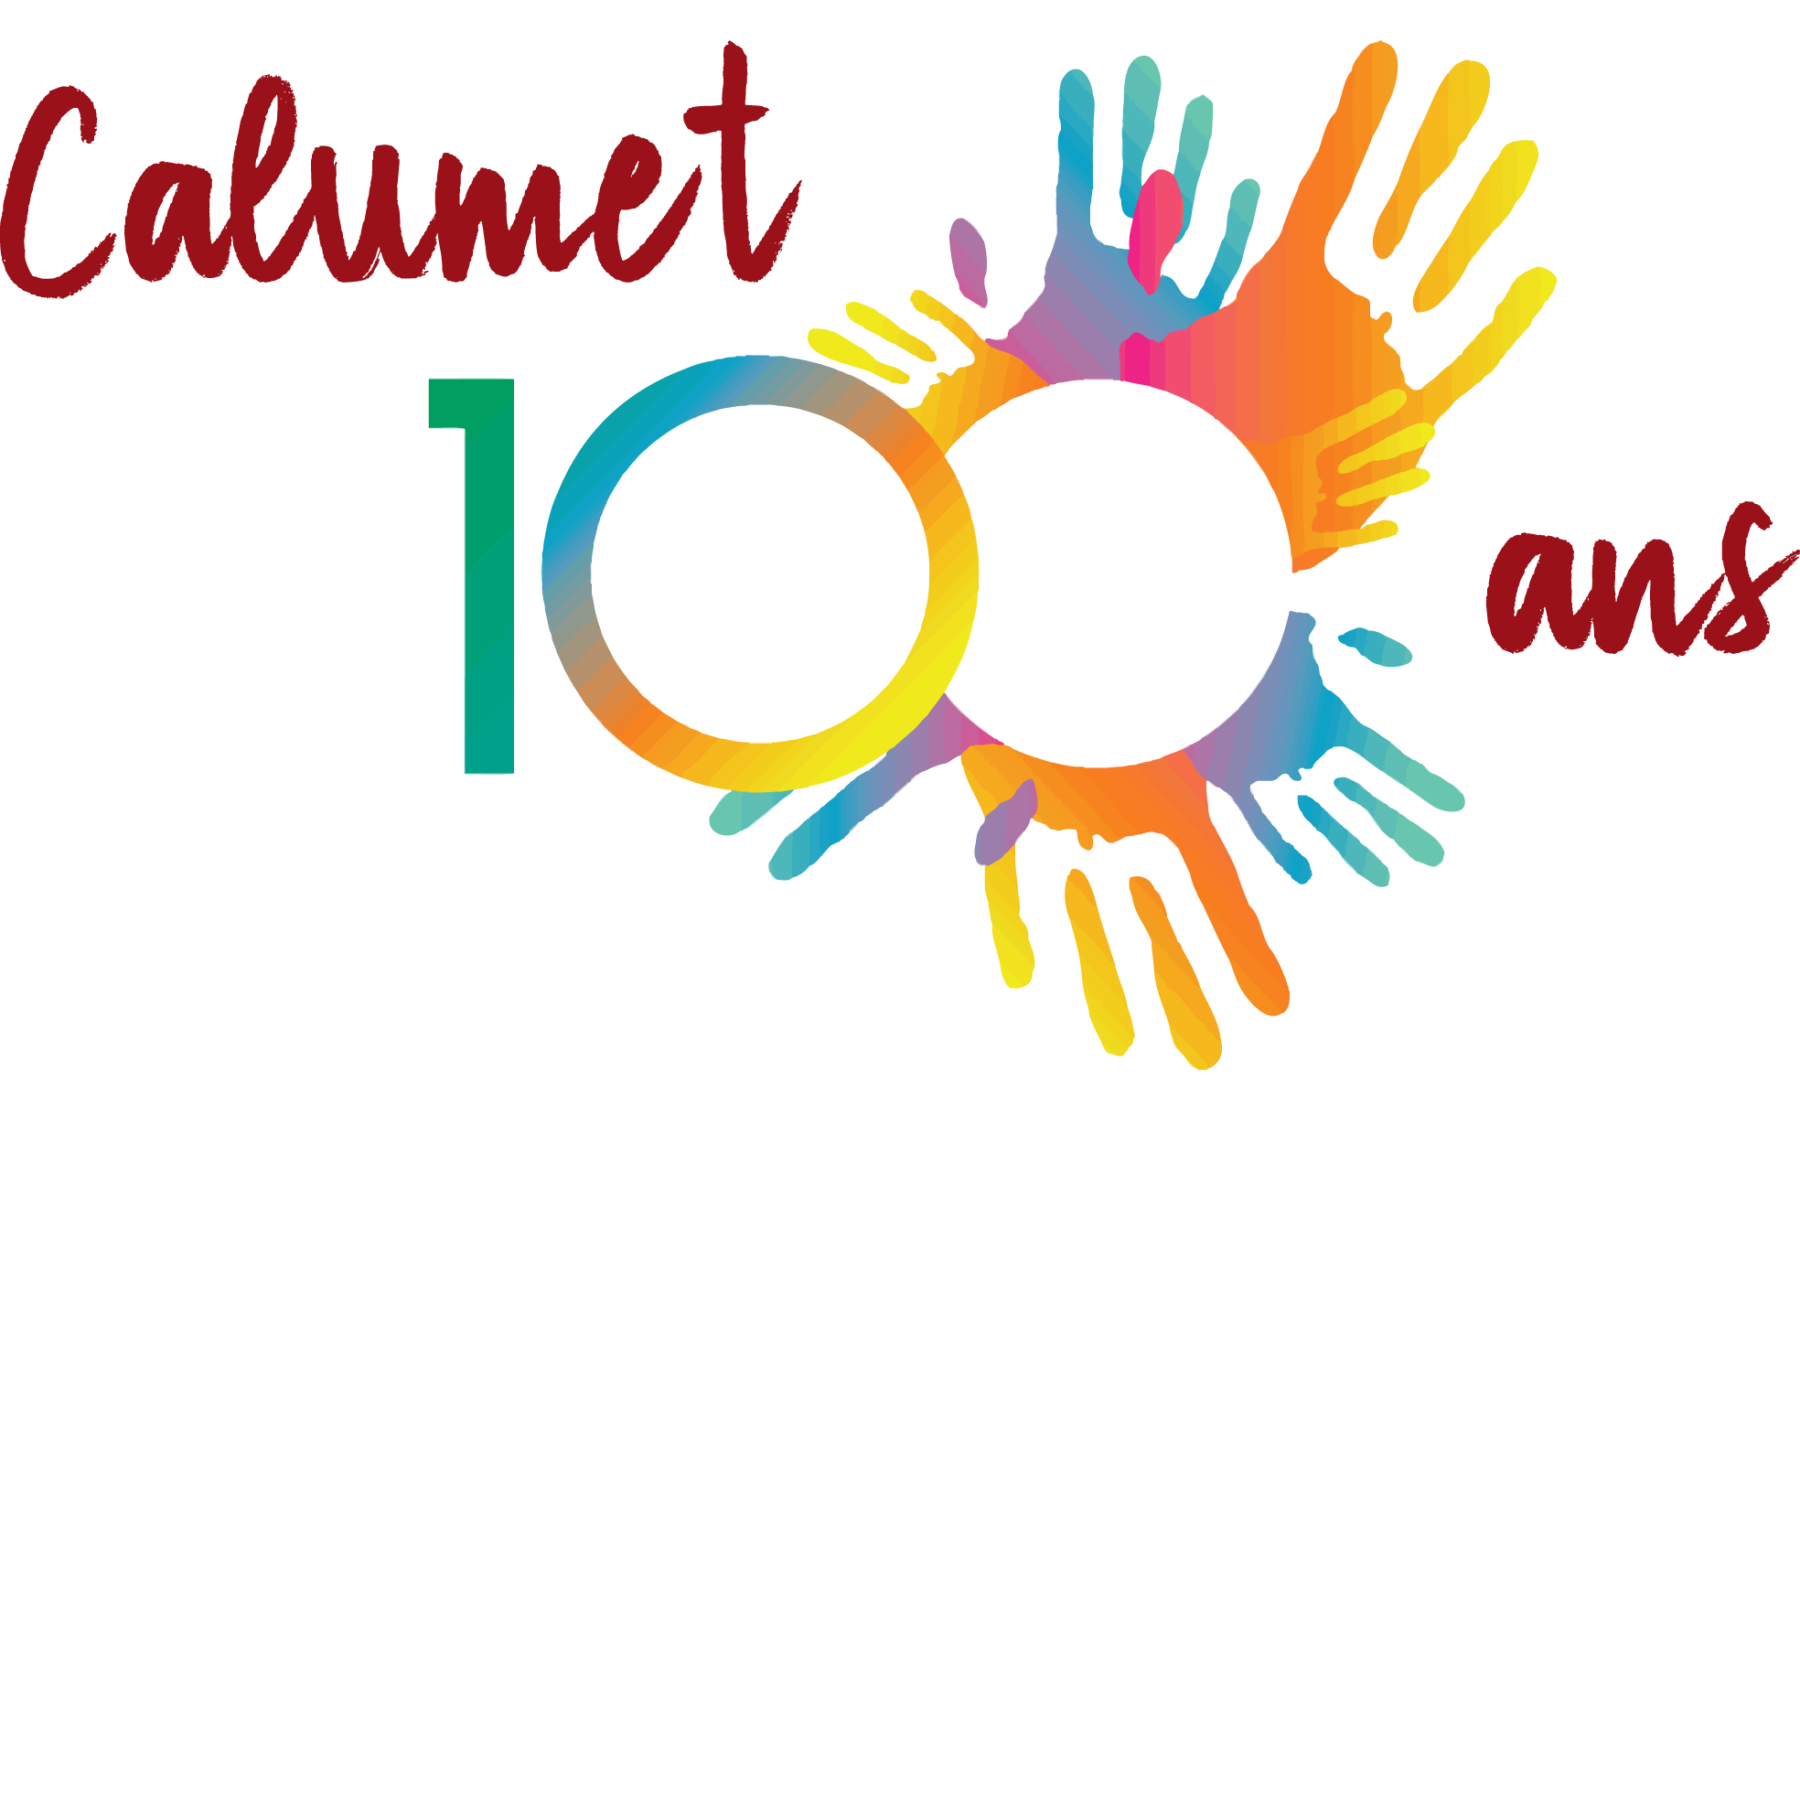 100 YEARS OF THE VILLAGE OF CALUMET – 1918 TO 2018